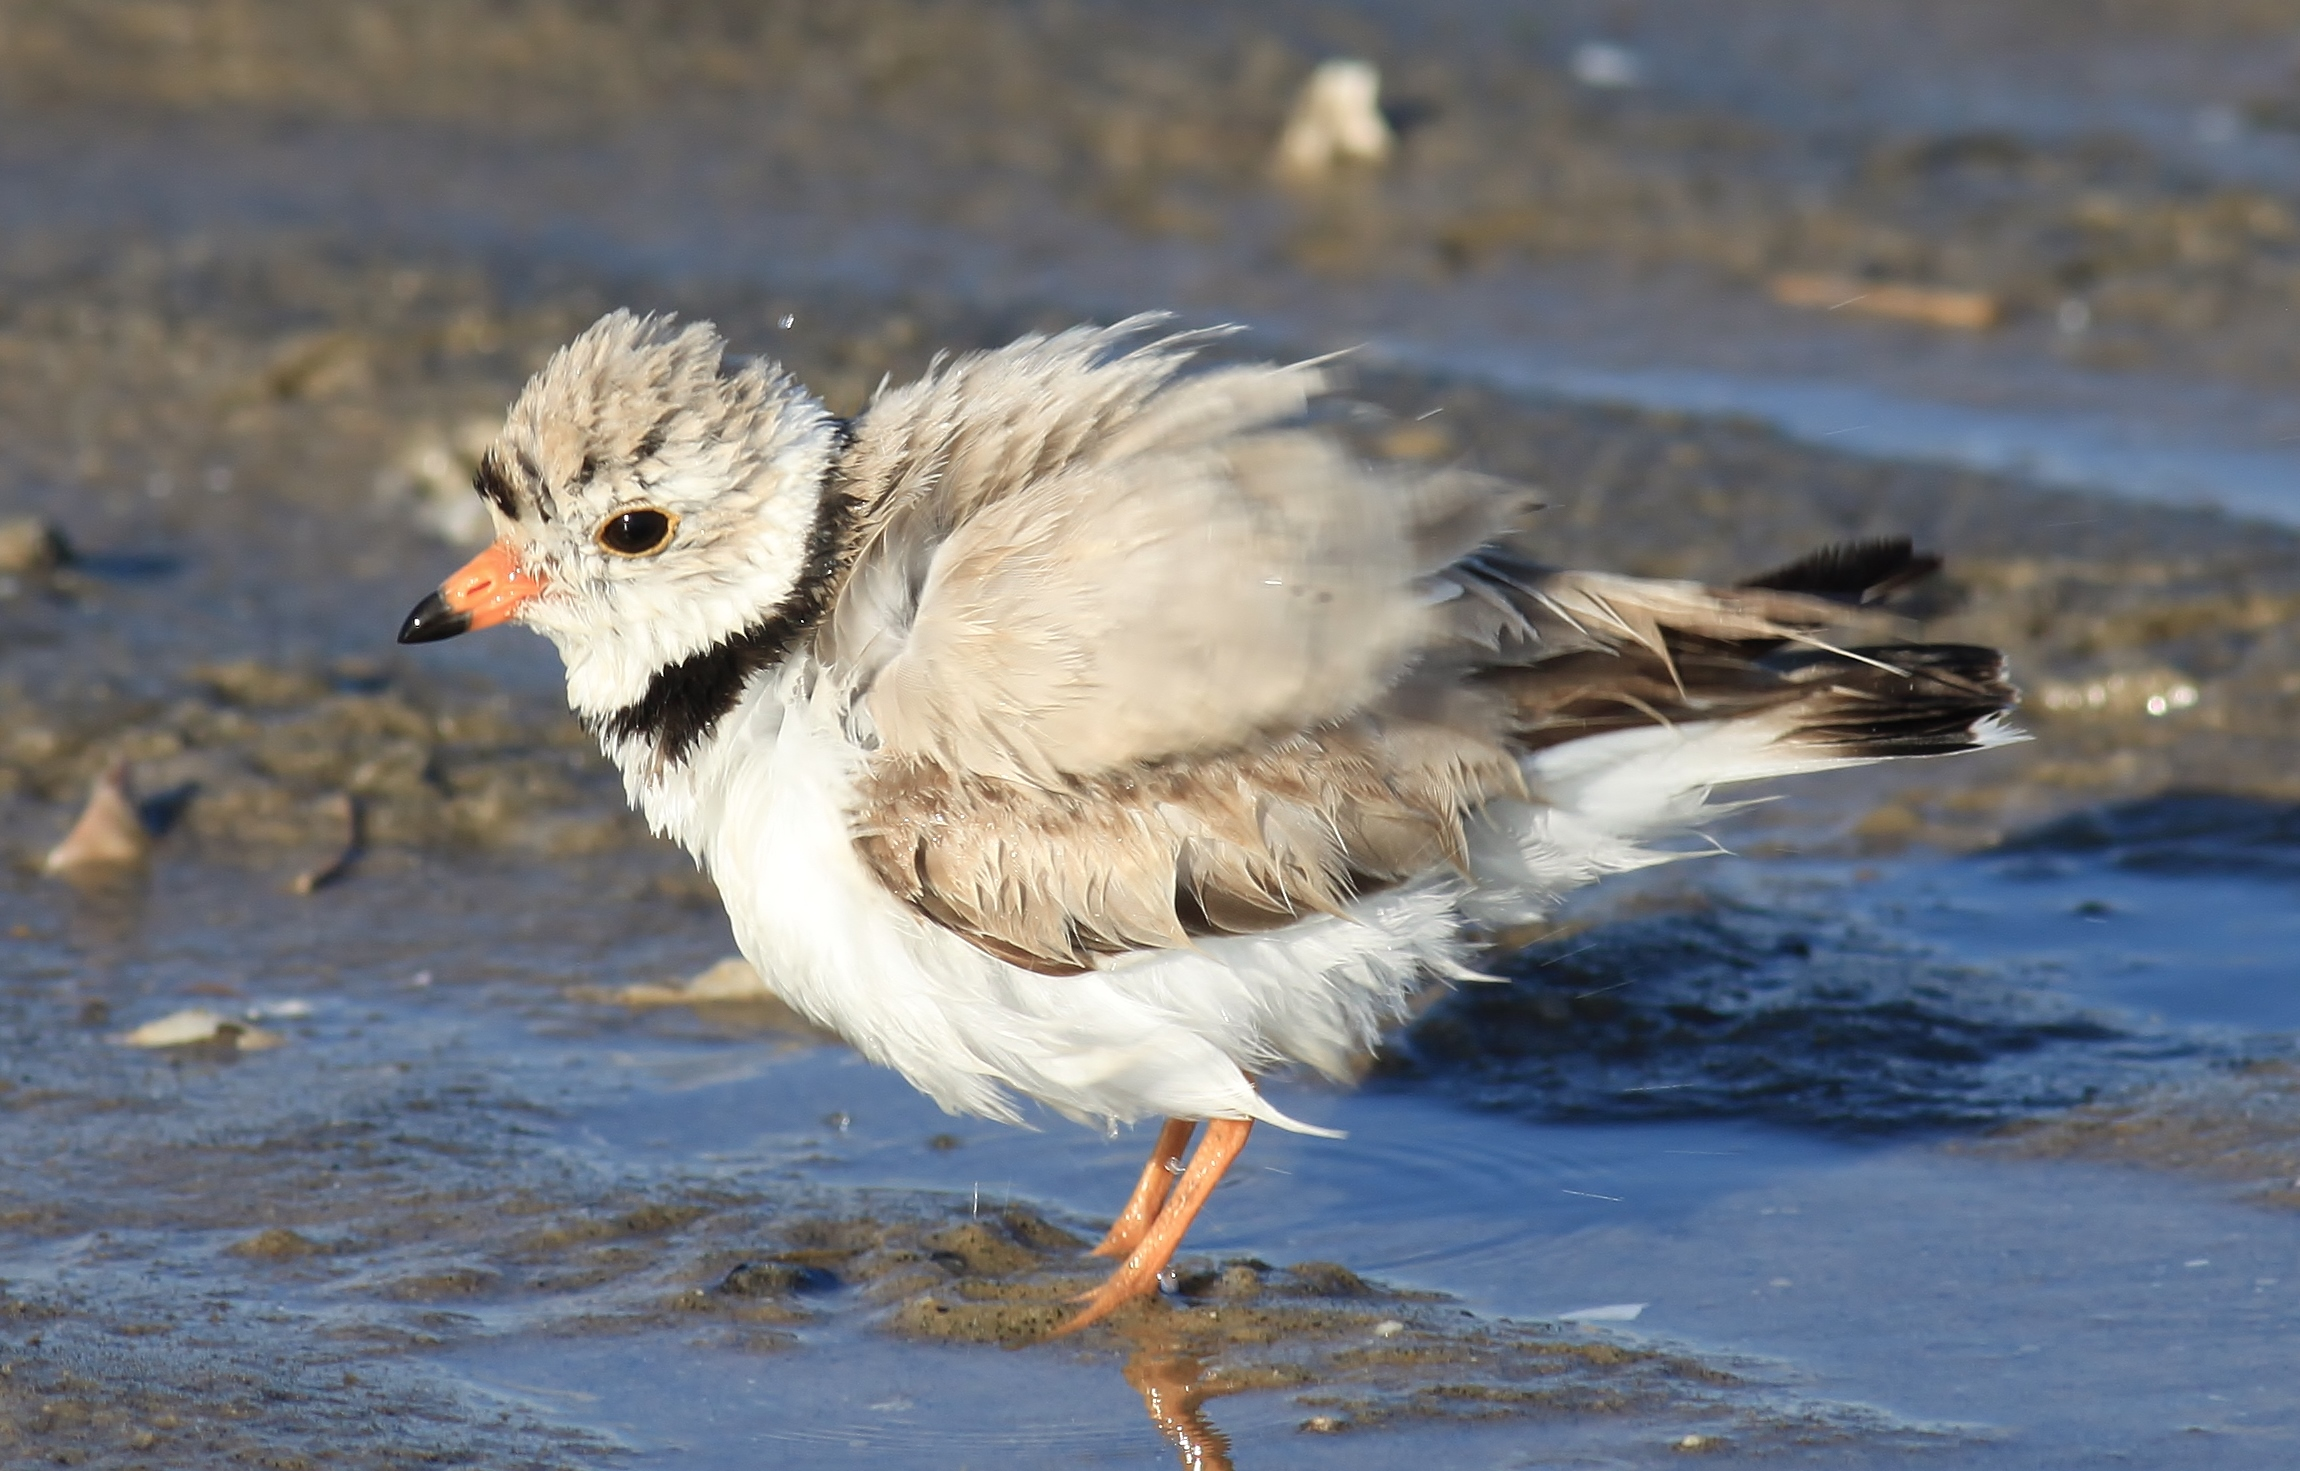 A plover after taking a bathe in a shallow pool of water at Sandy Hook, NJ.